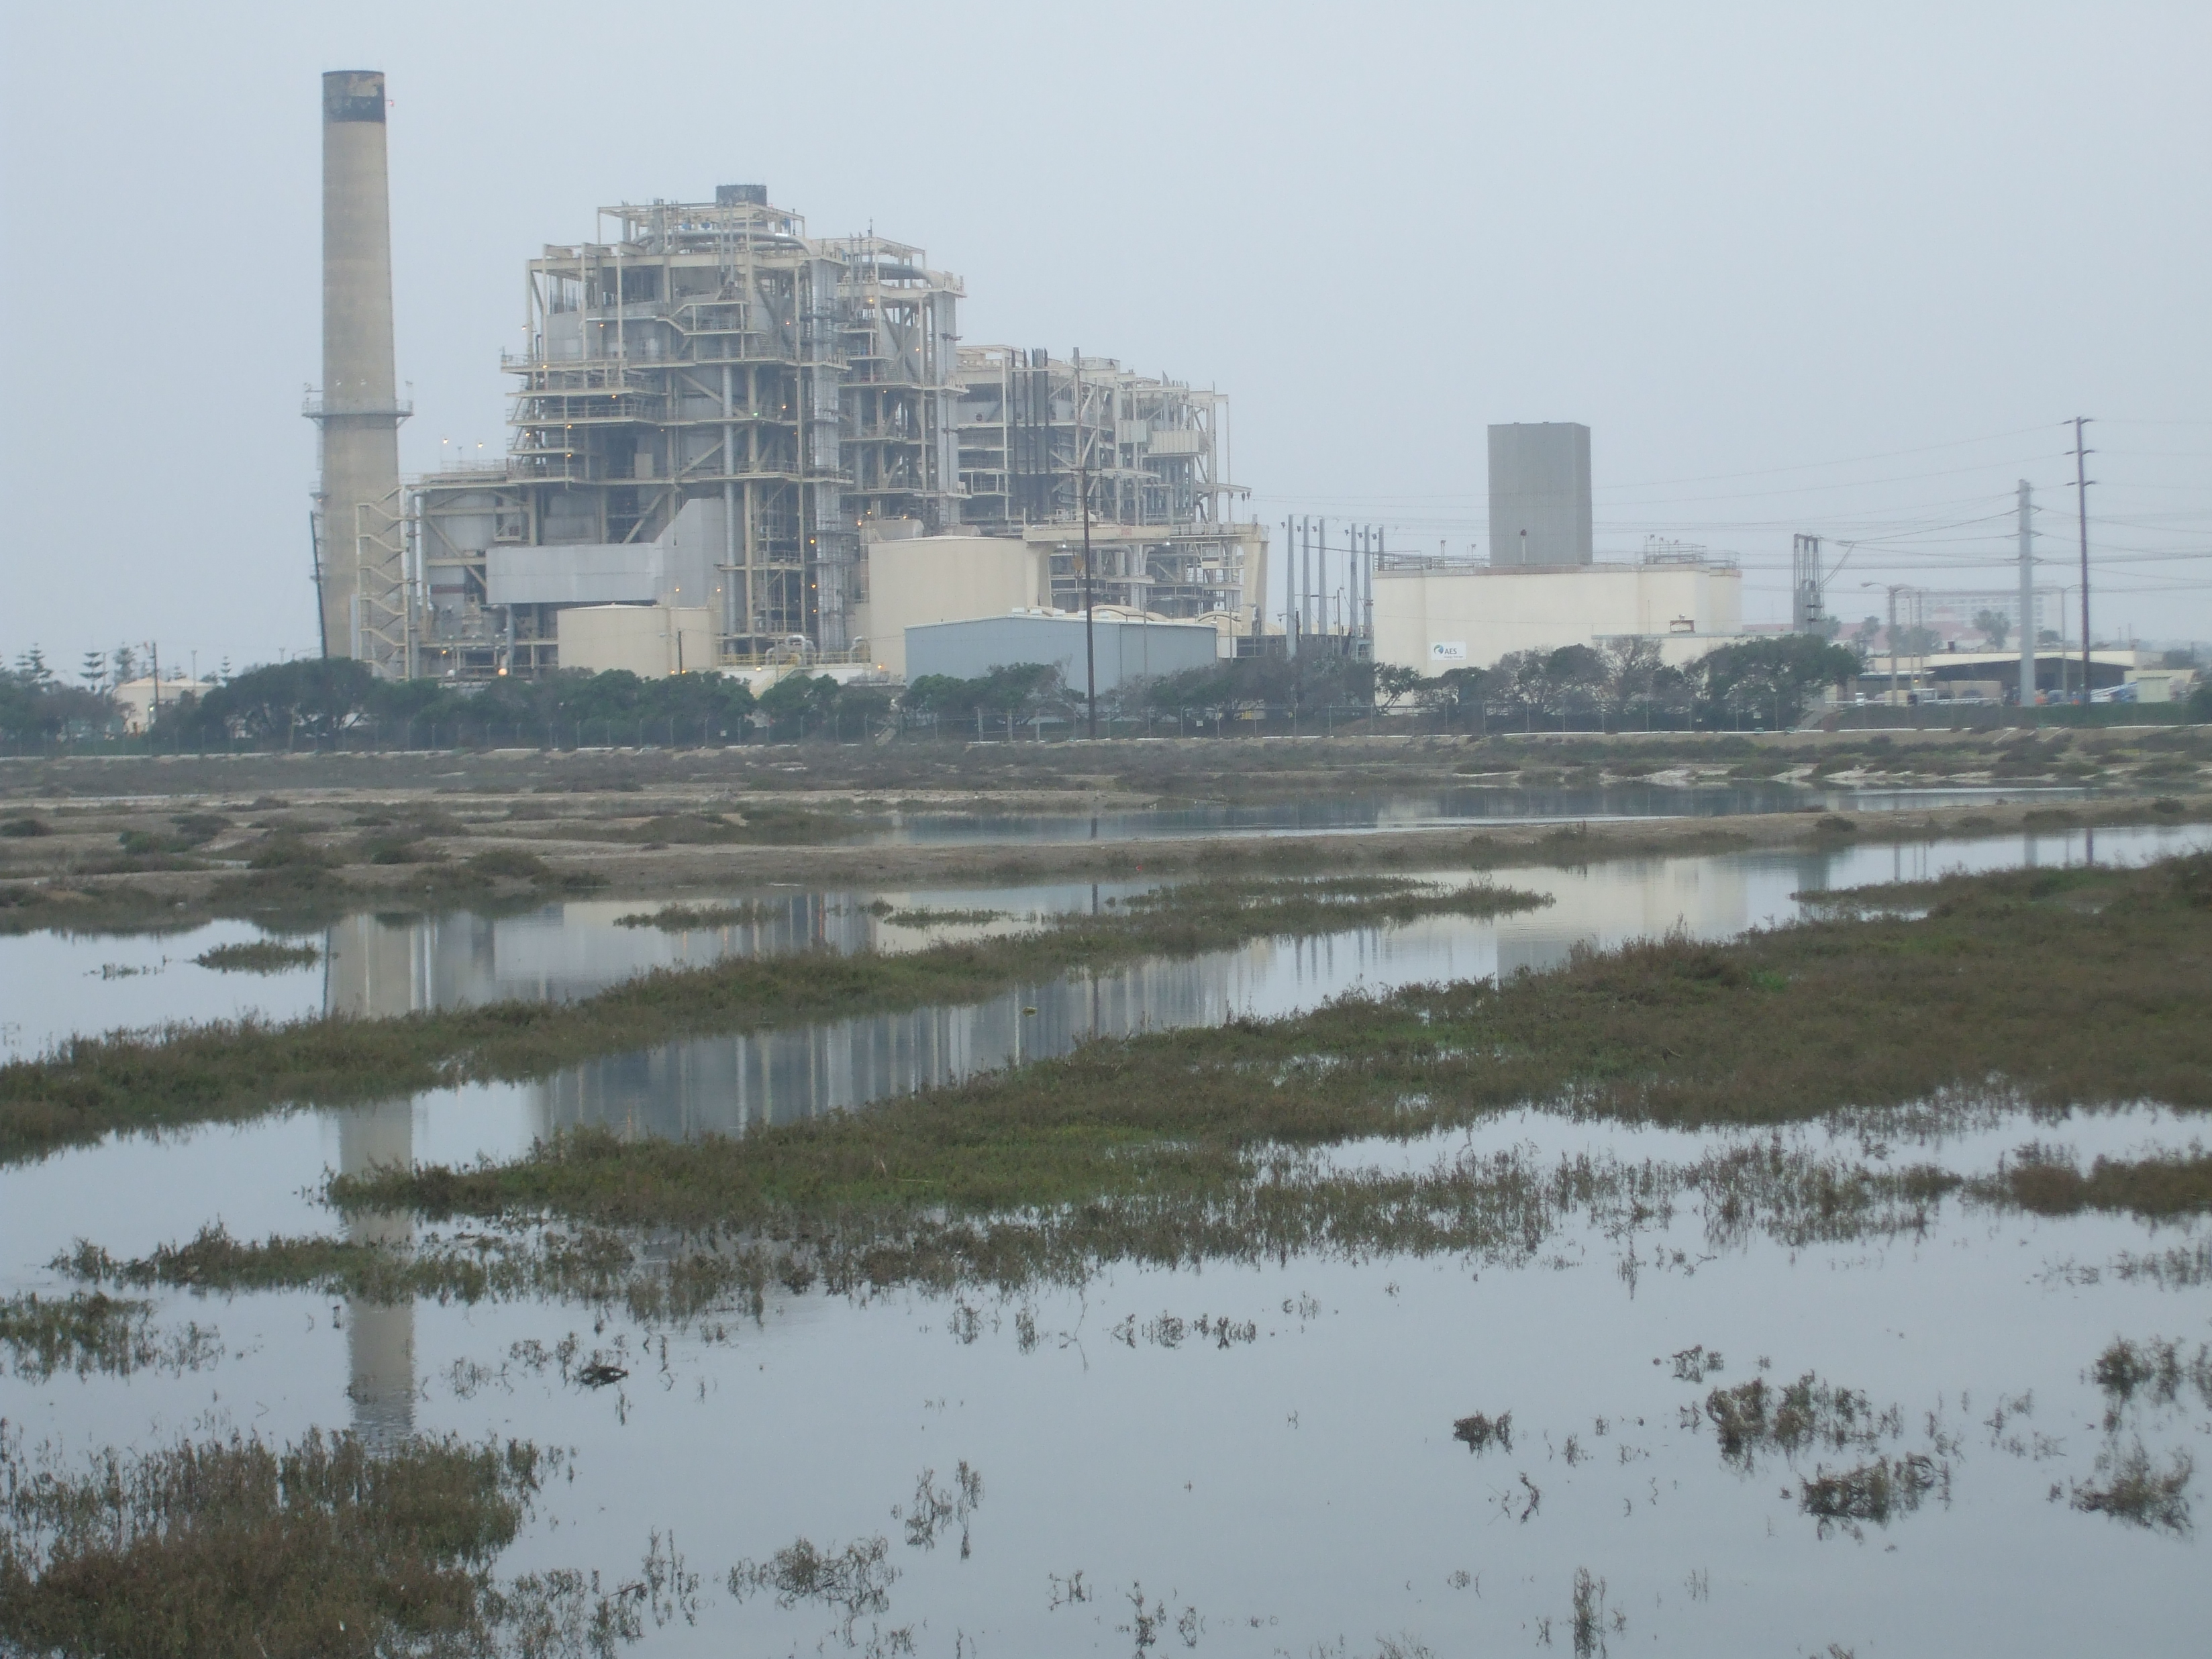 King_Tides_Poseidon_Desalination_Huntington_Beach4.JPG